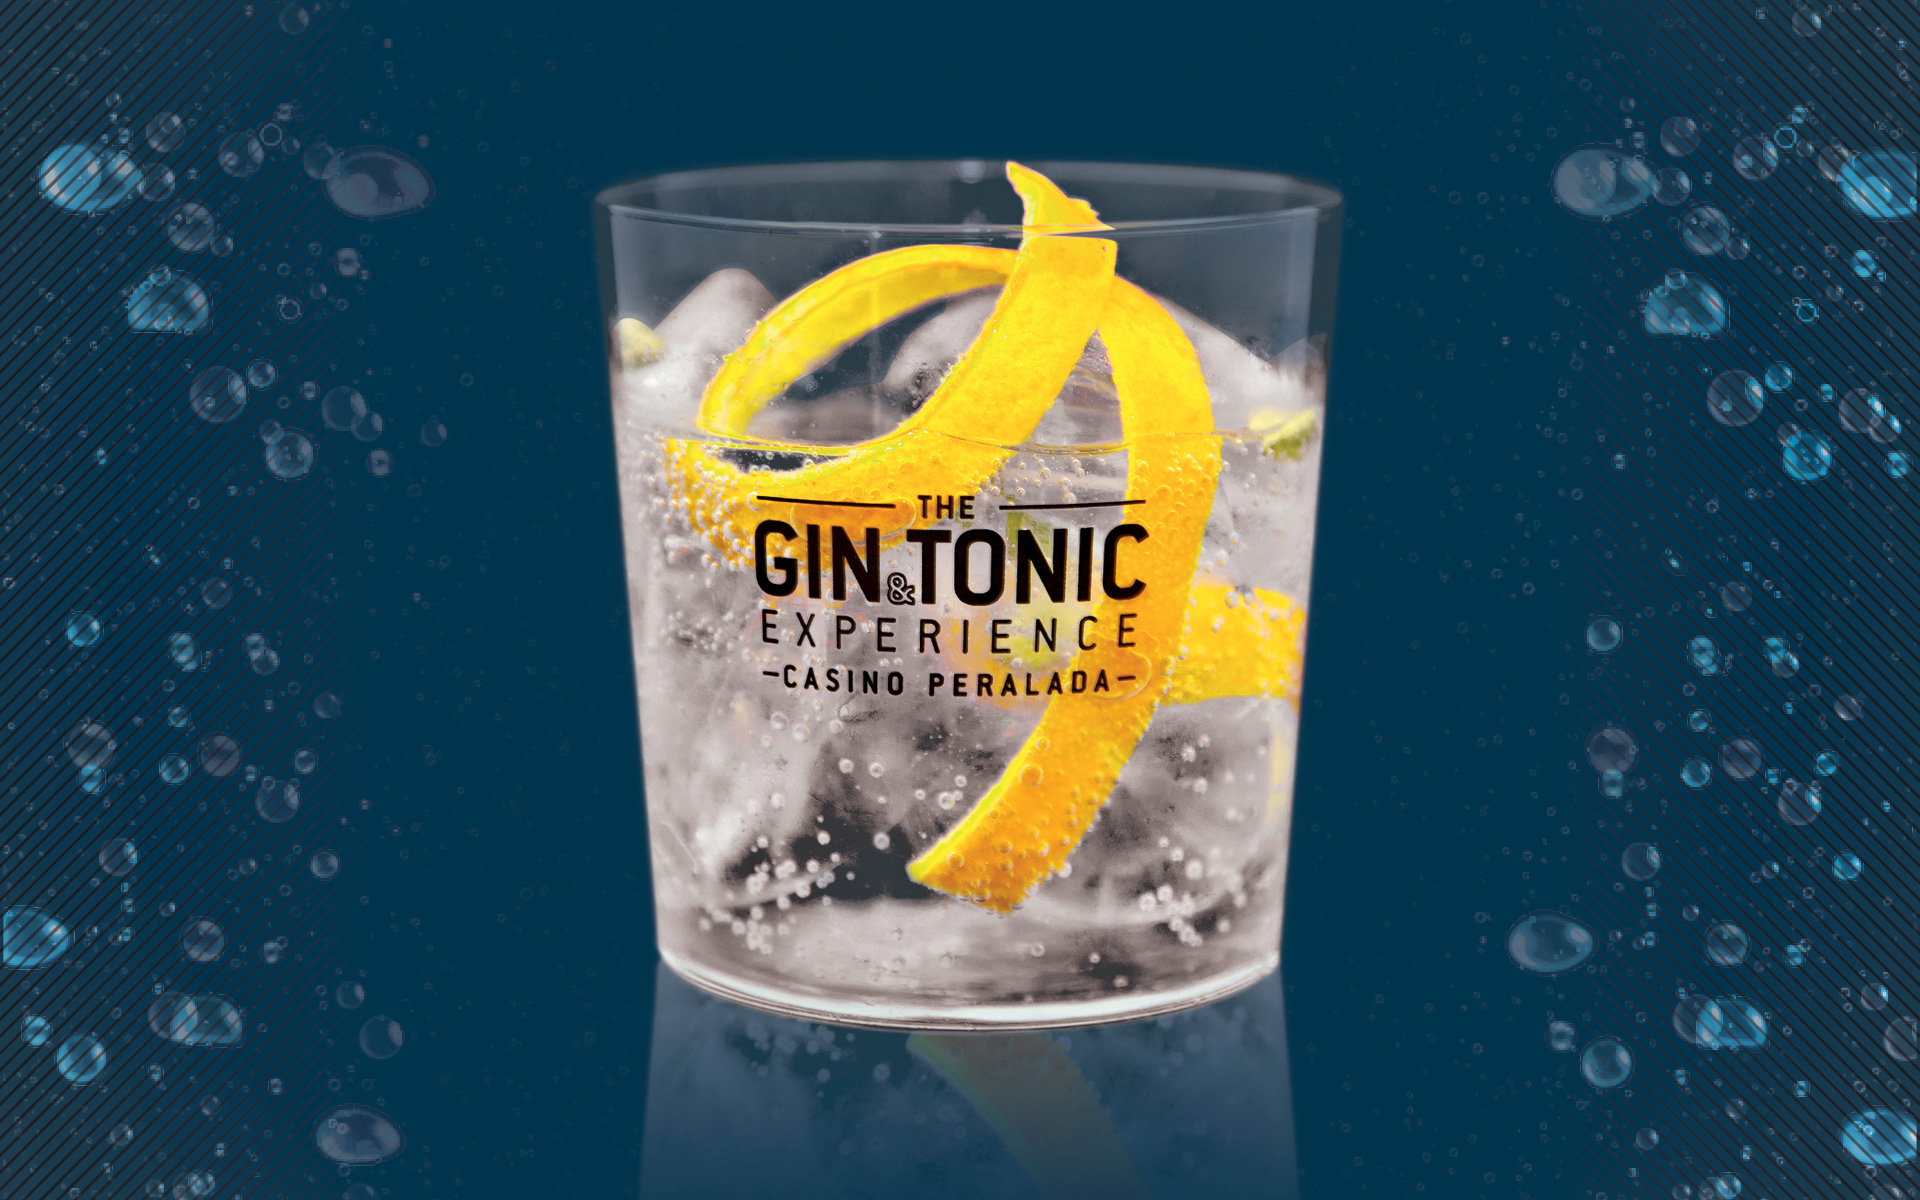 The Gin&tonic Experience